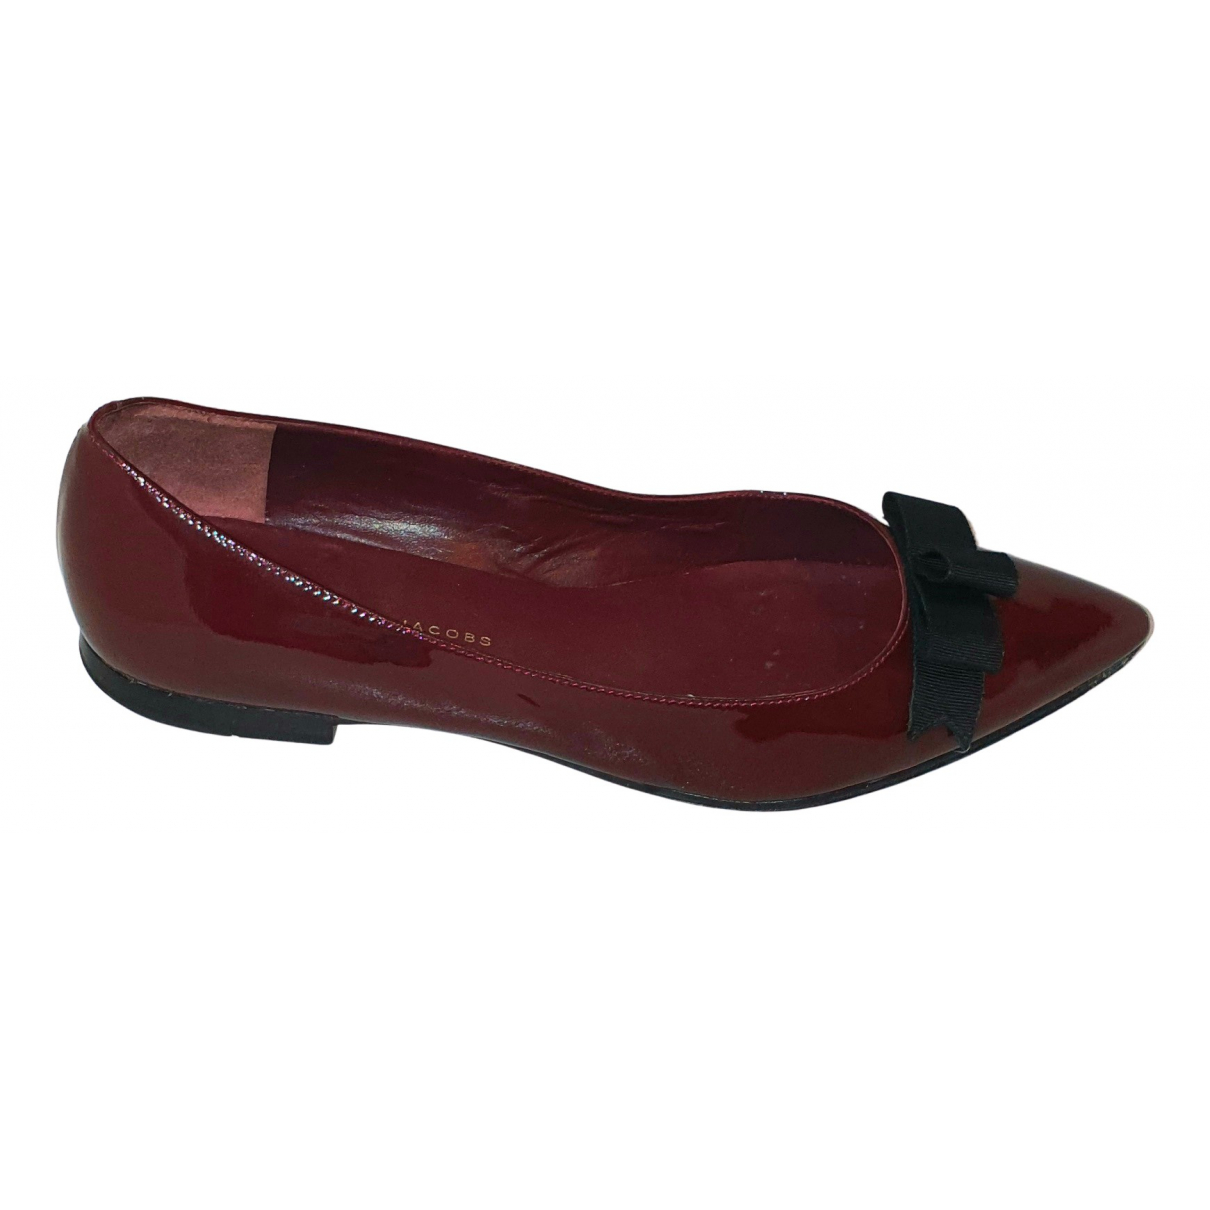 Marc By Marc Jacobs N Burgundy Patent leather Ballet flats for Women 40 EU